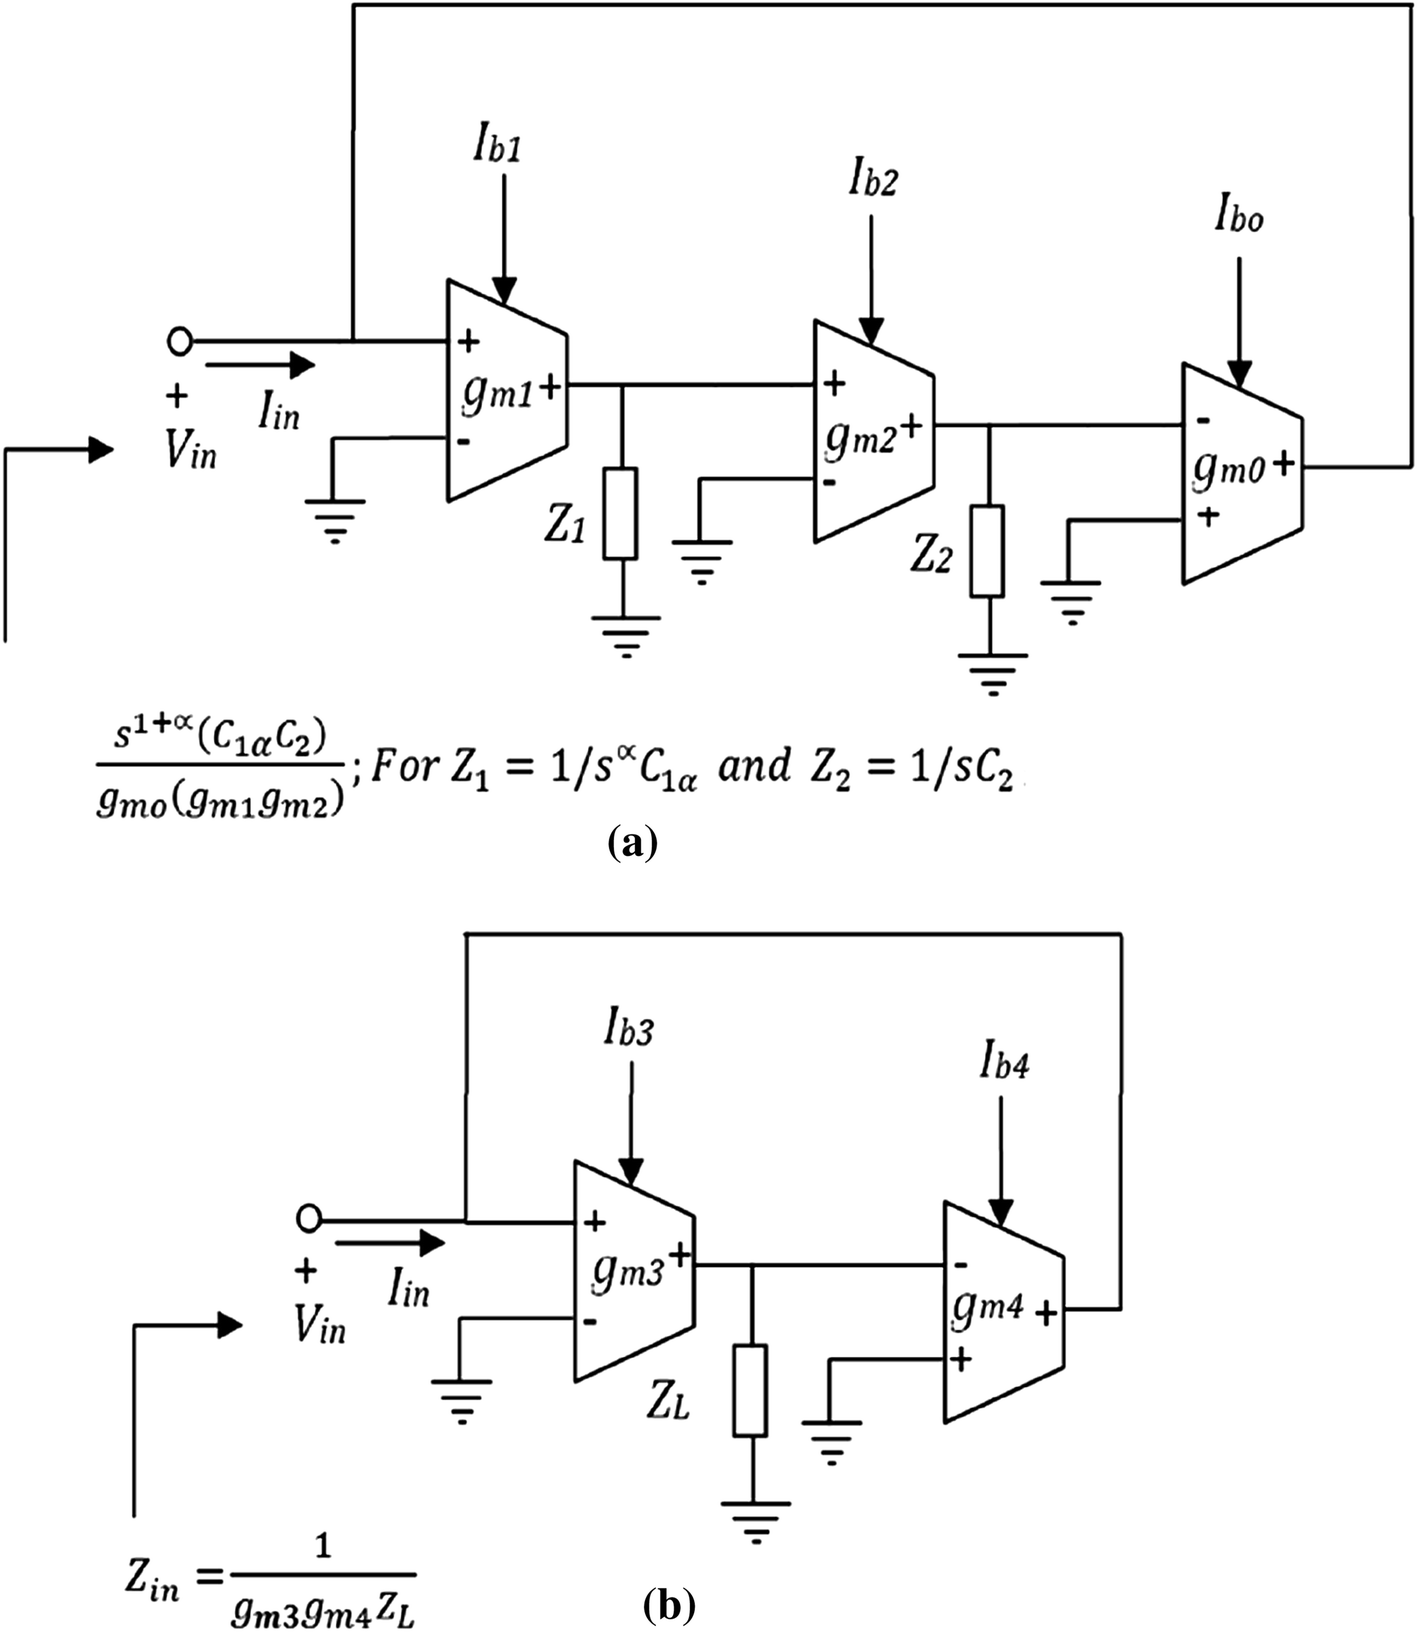 Realization Of A Higher Fractional Order Element Based On Novel Ota Voltage Controlled Low Pass Filter With Lm13600 Circuit Schematic Open Image In New Window